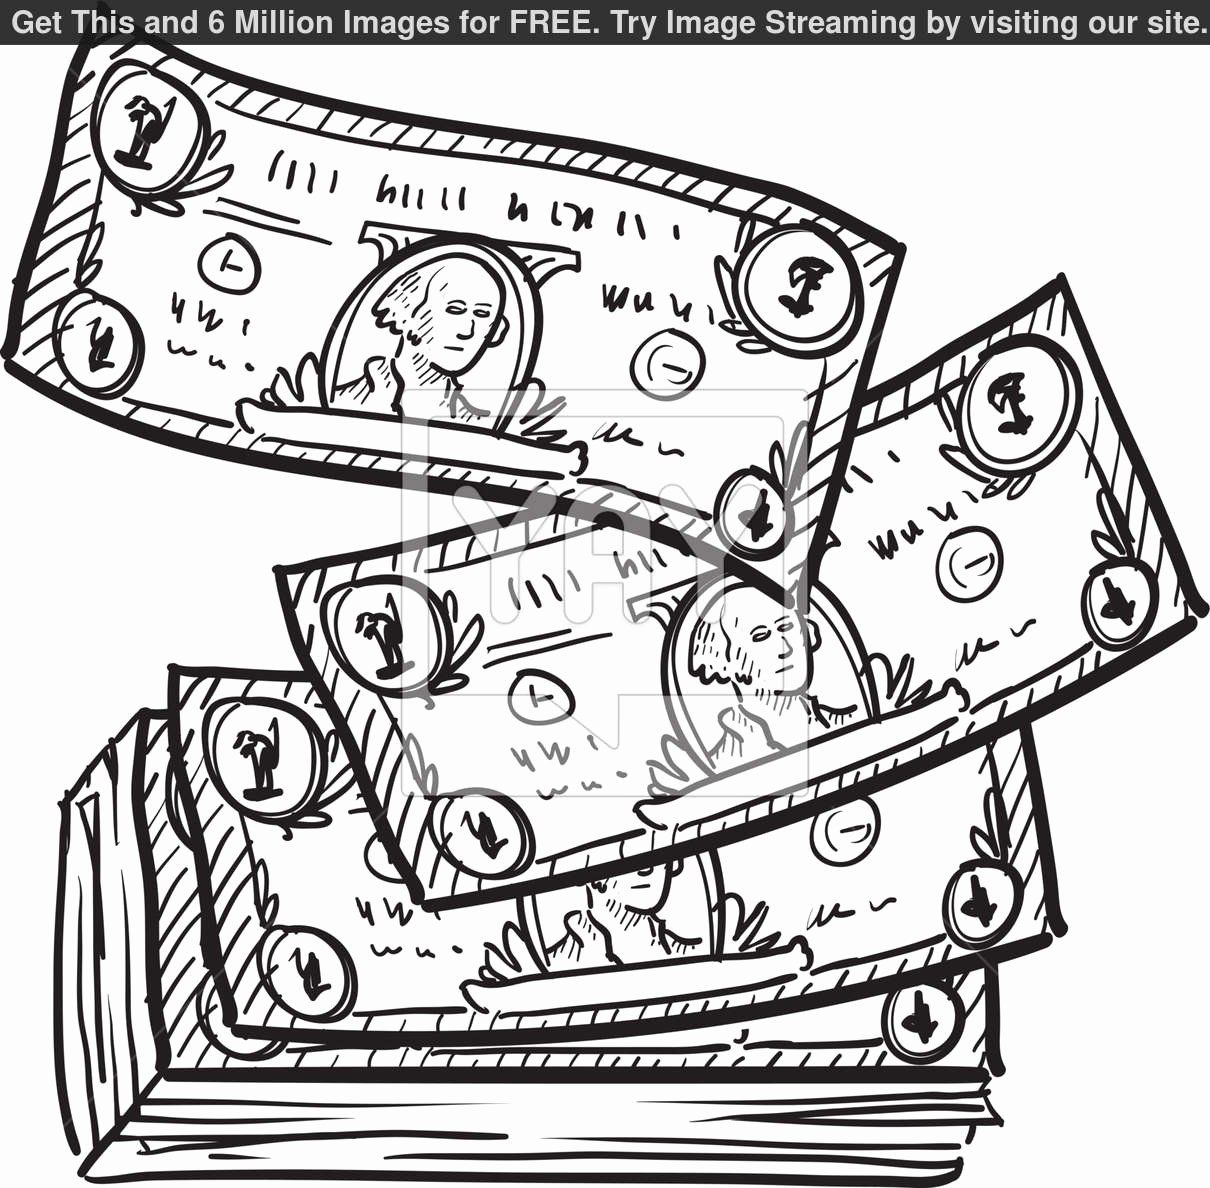 Dollar Bill Coloring Page Best Of 100 Dollar Bill Coloring Sheet Coloring Pages Dollar Bill Rose Coloring Pages Coloring Pages